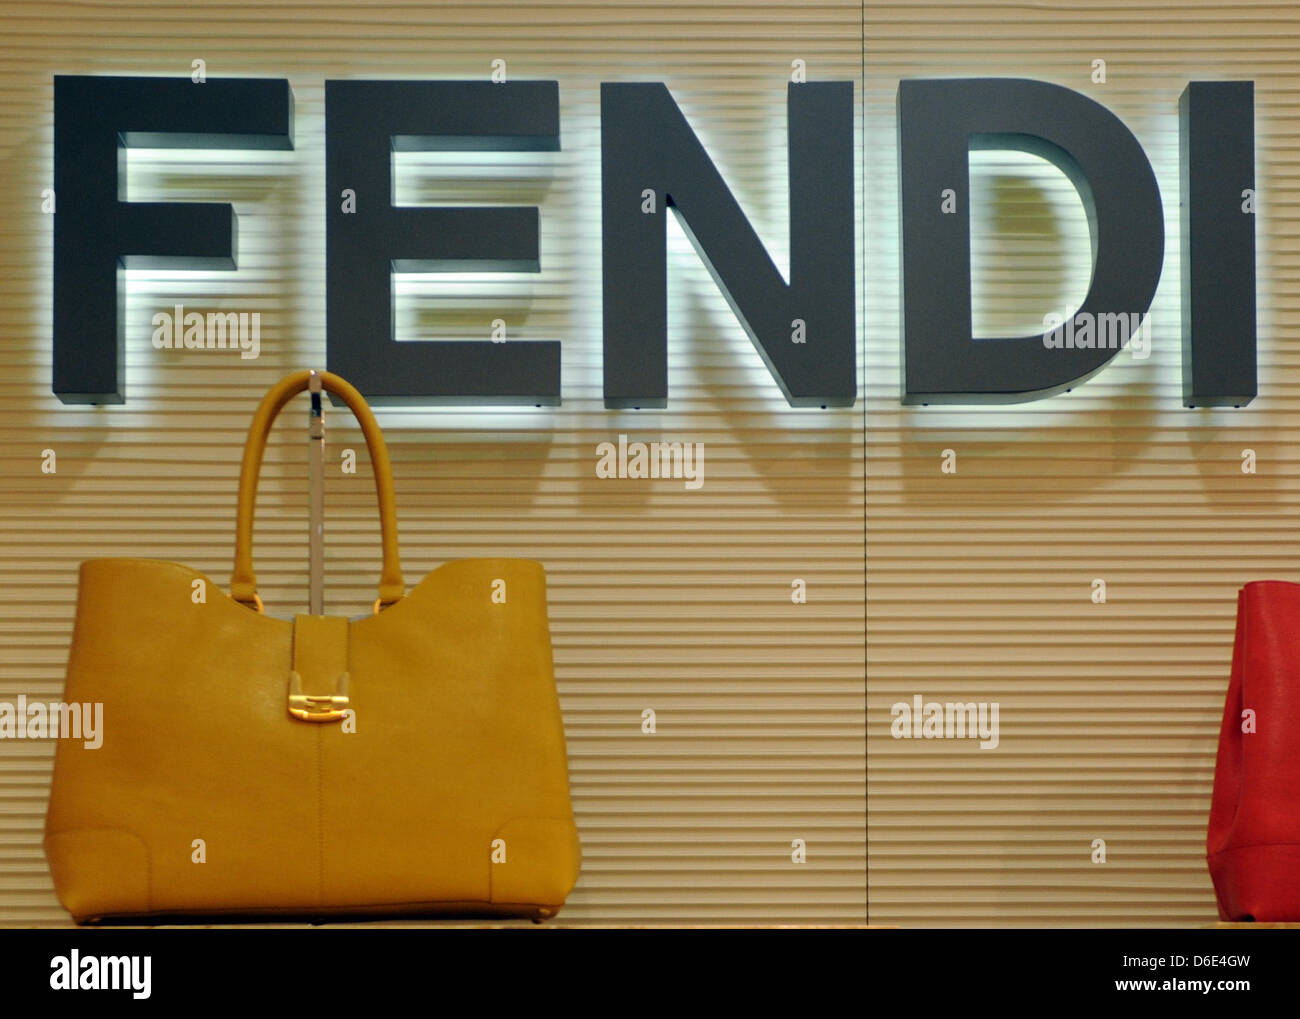 Handbag of luxury brand Fendi, pictured on 18 January 2012 the shopping center Galeries Lafayette in Berlin, Germany. - Stock Image